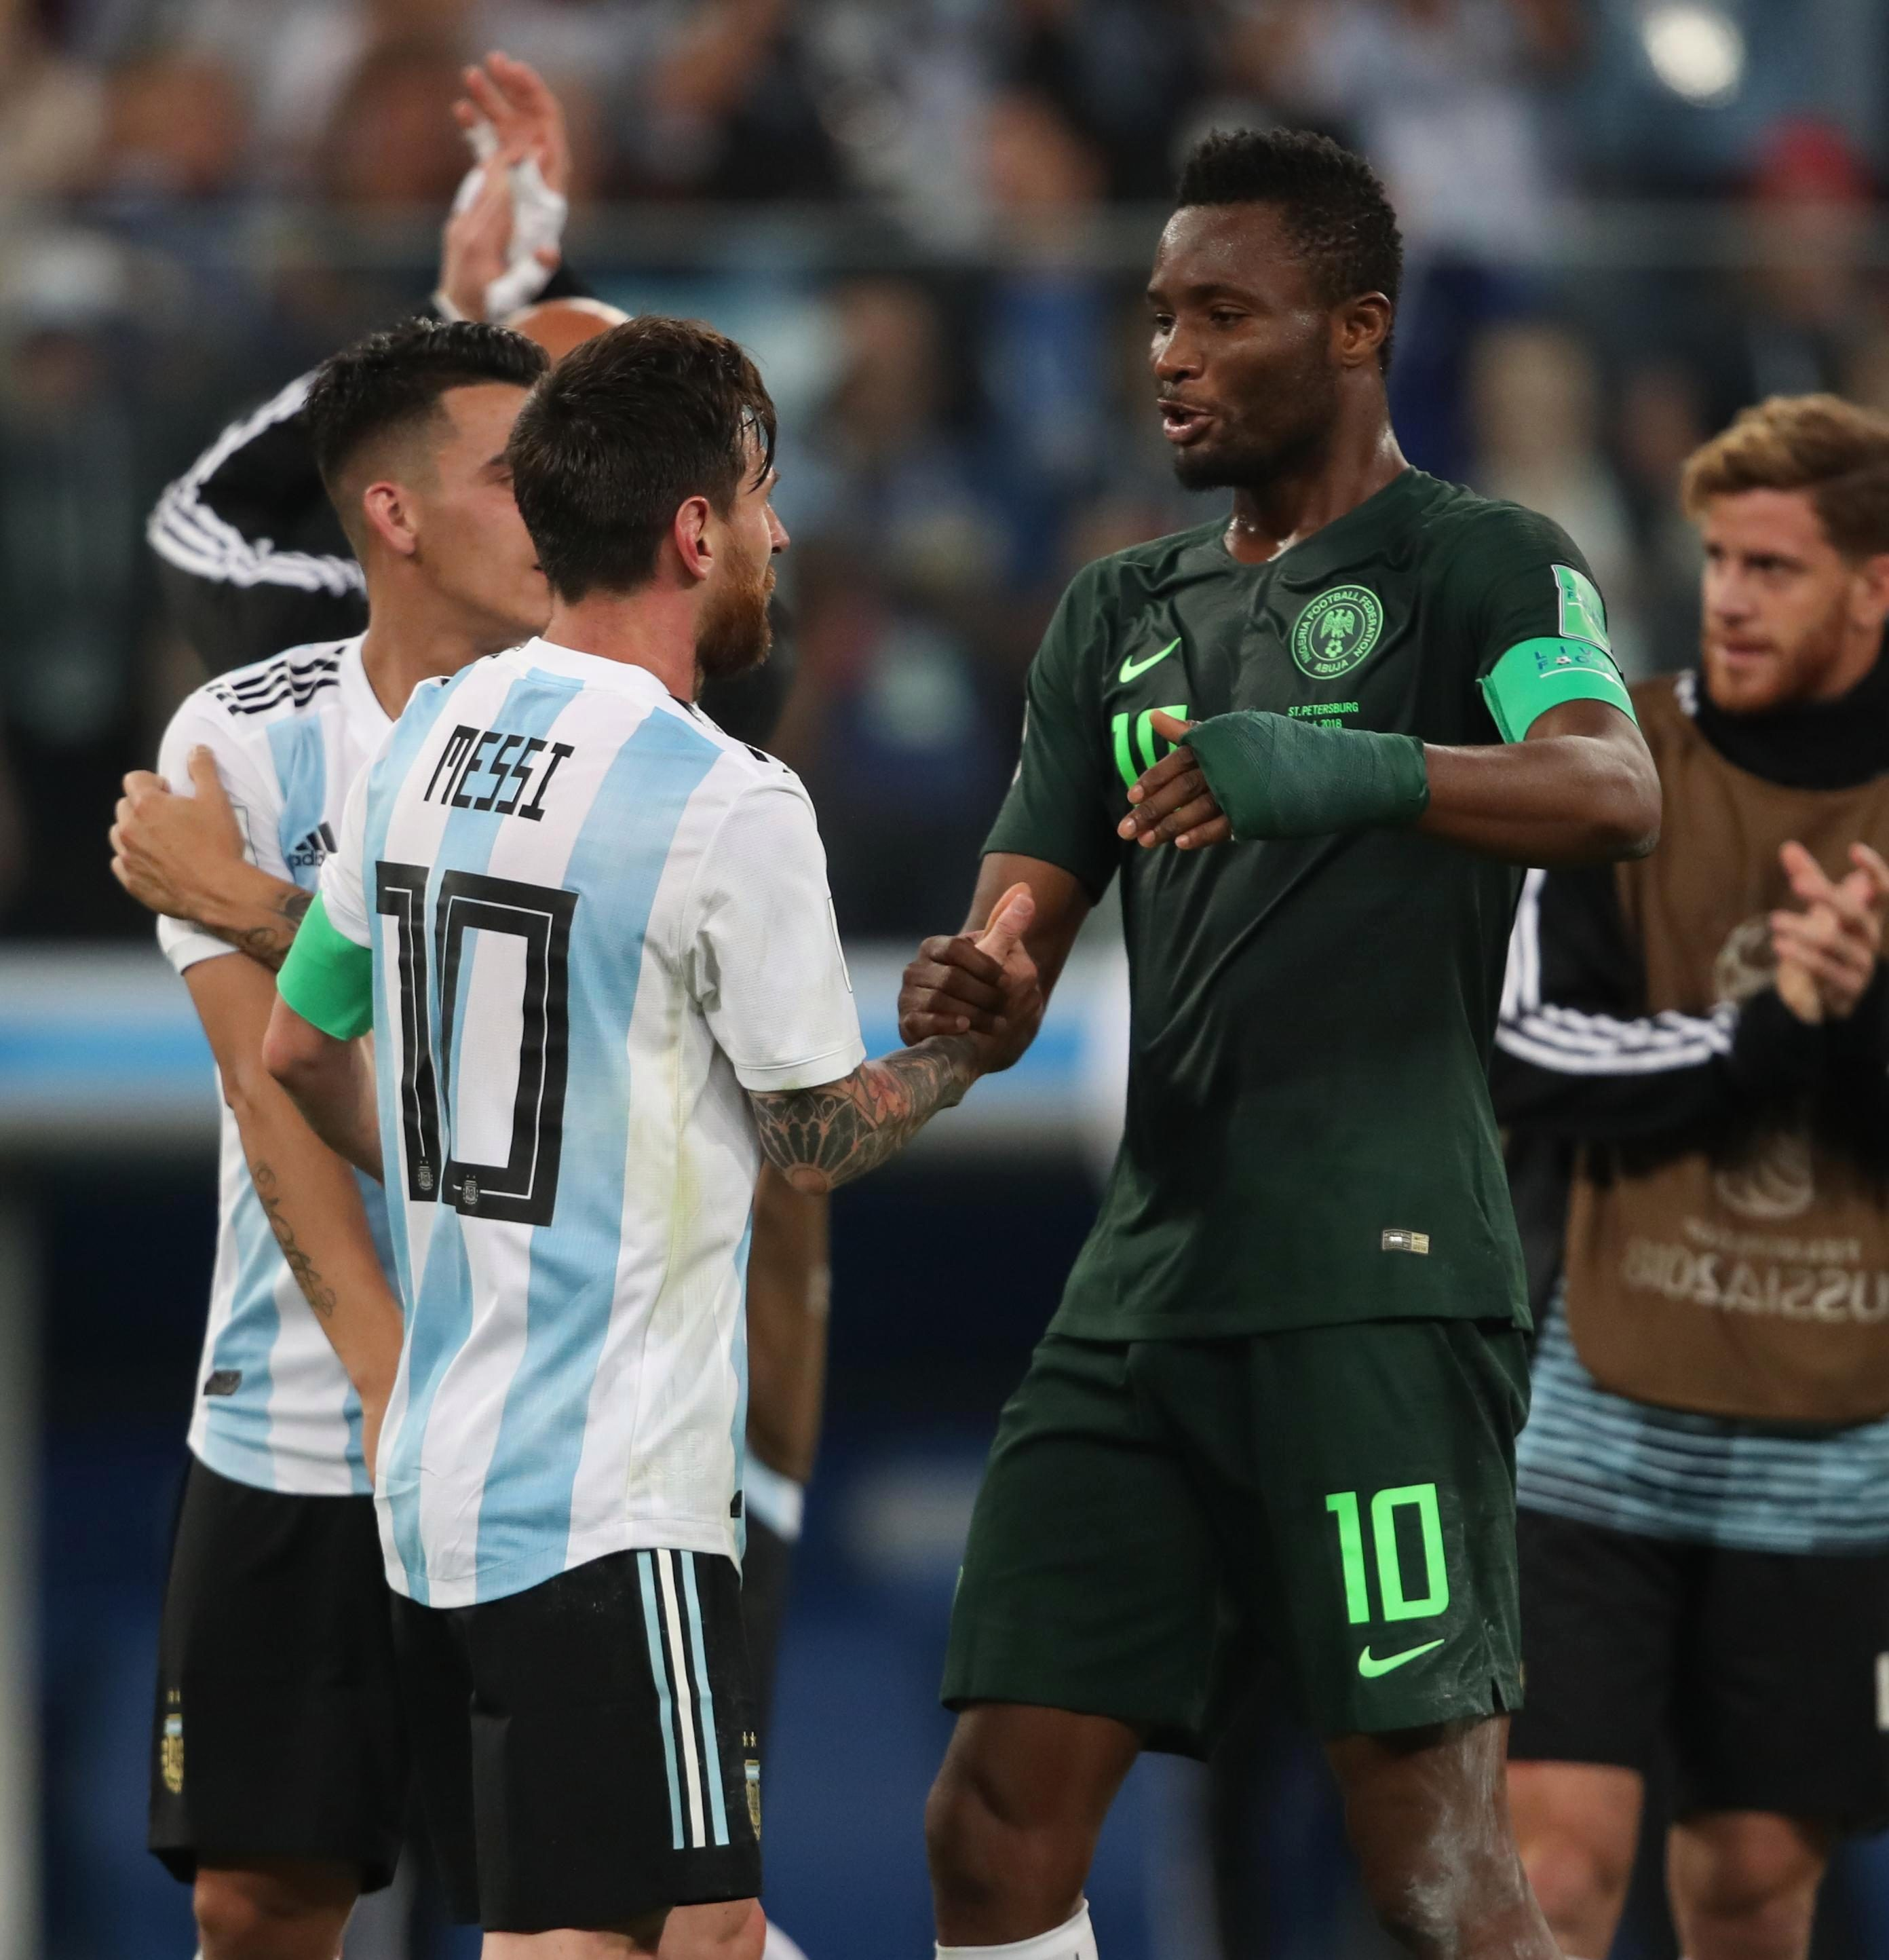 Messi visited Mikel personally to try and persuade him to stay